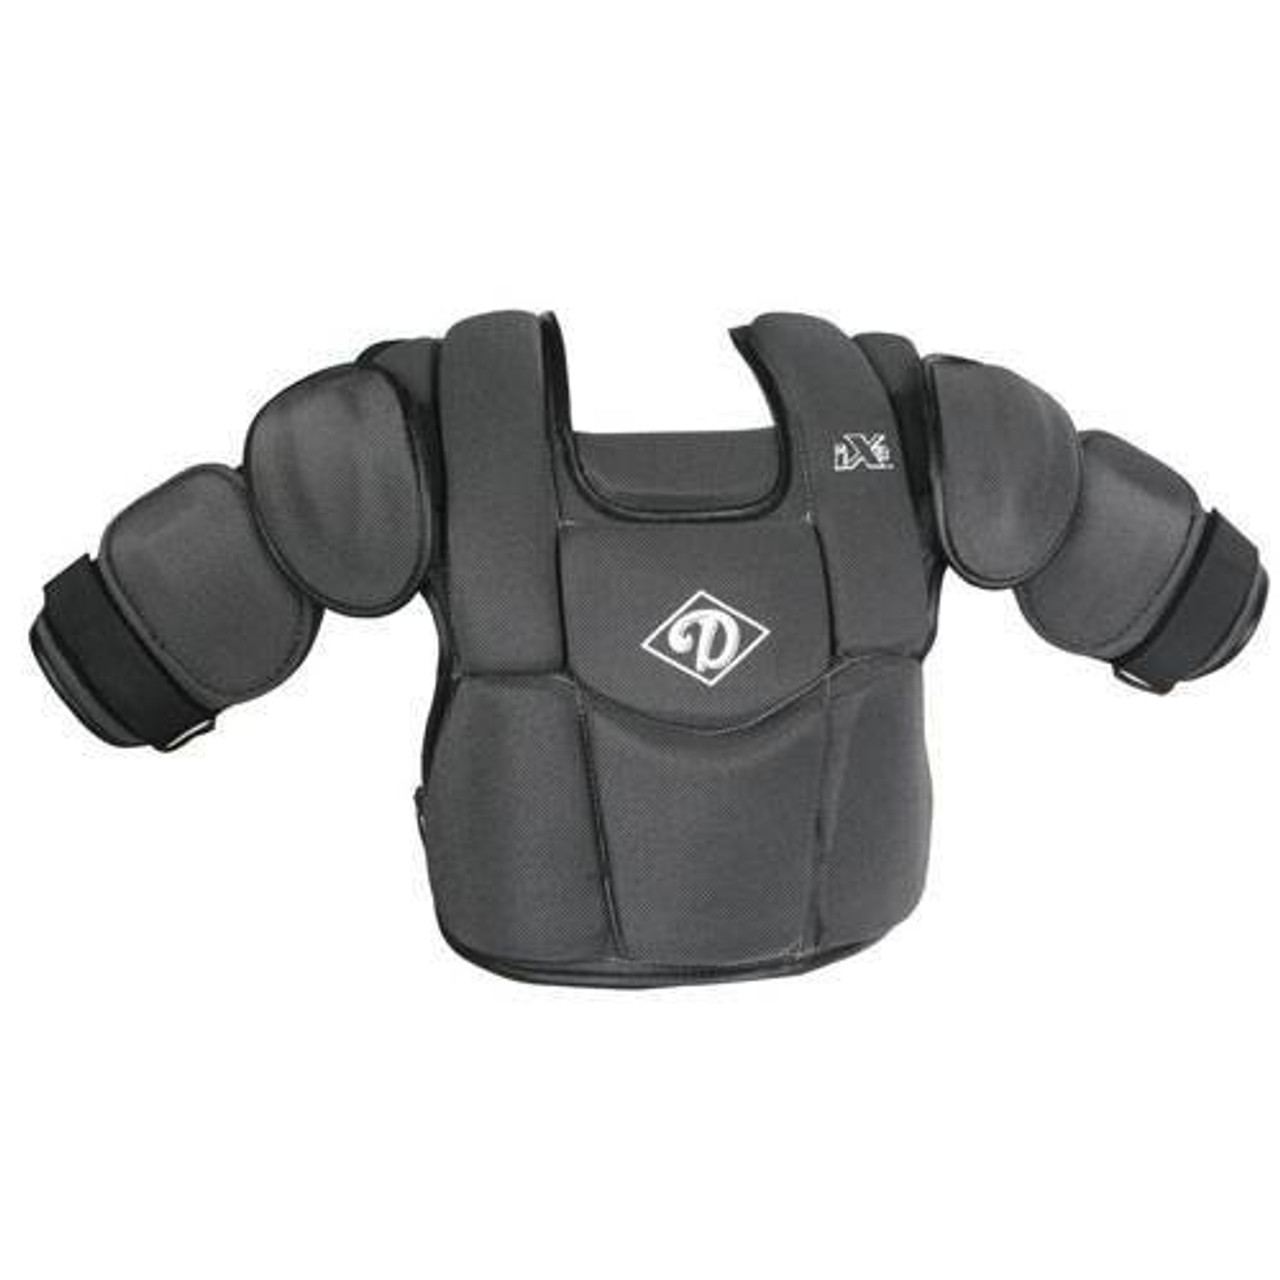 DCP-iX3 Baseball Umpire Chest Protector